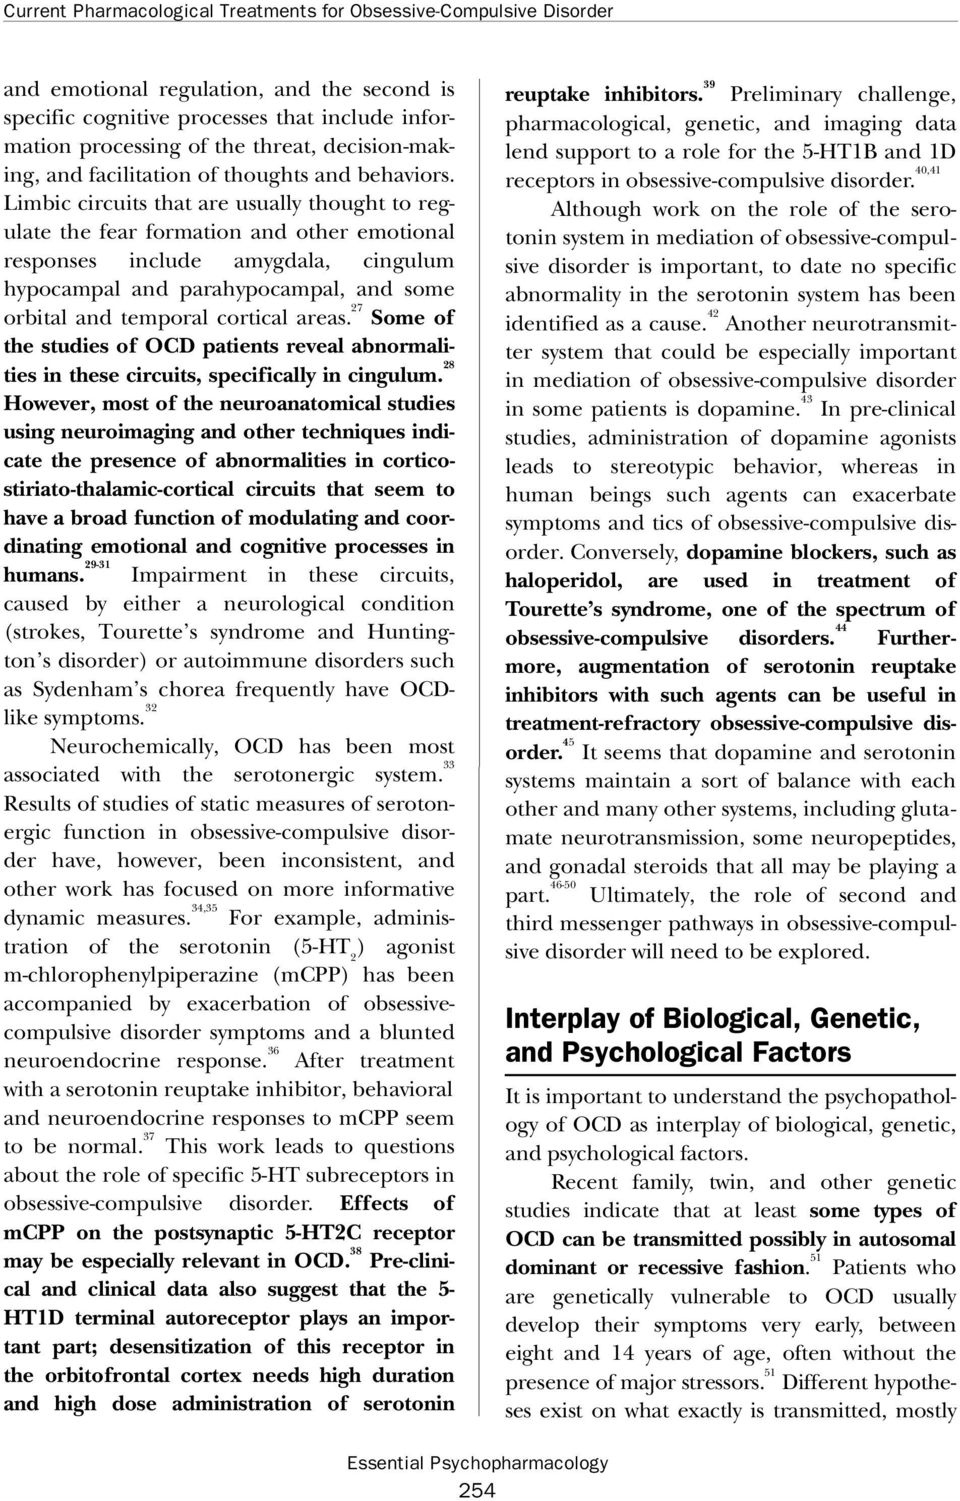 Limbic circuits that are usually thought to regulate the fear formation and other emotional responses include amygdala, cingulum hypocampal and parahypocampal, and some orbital and temporal cortical